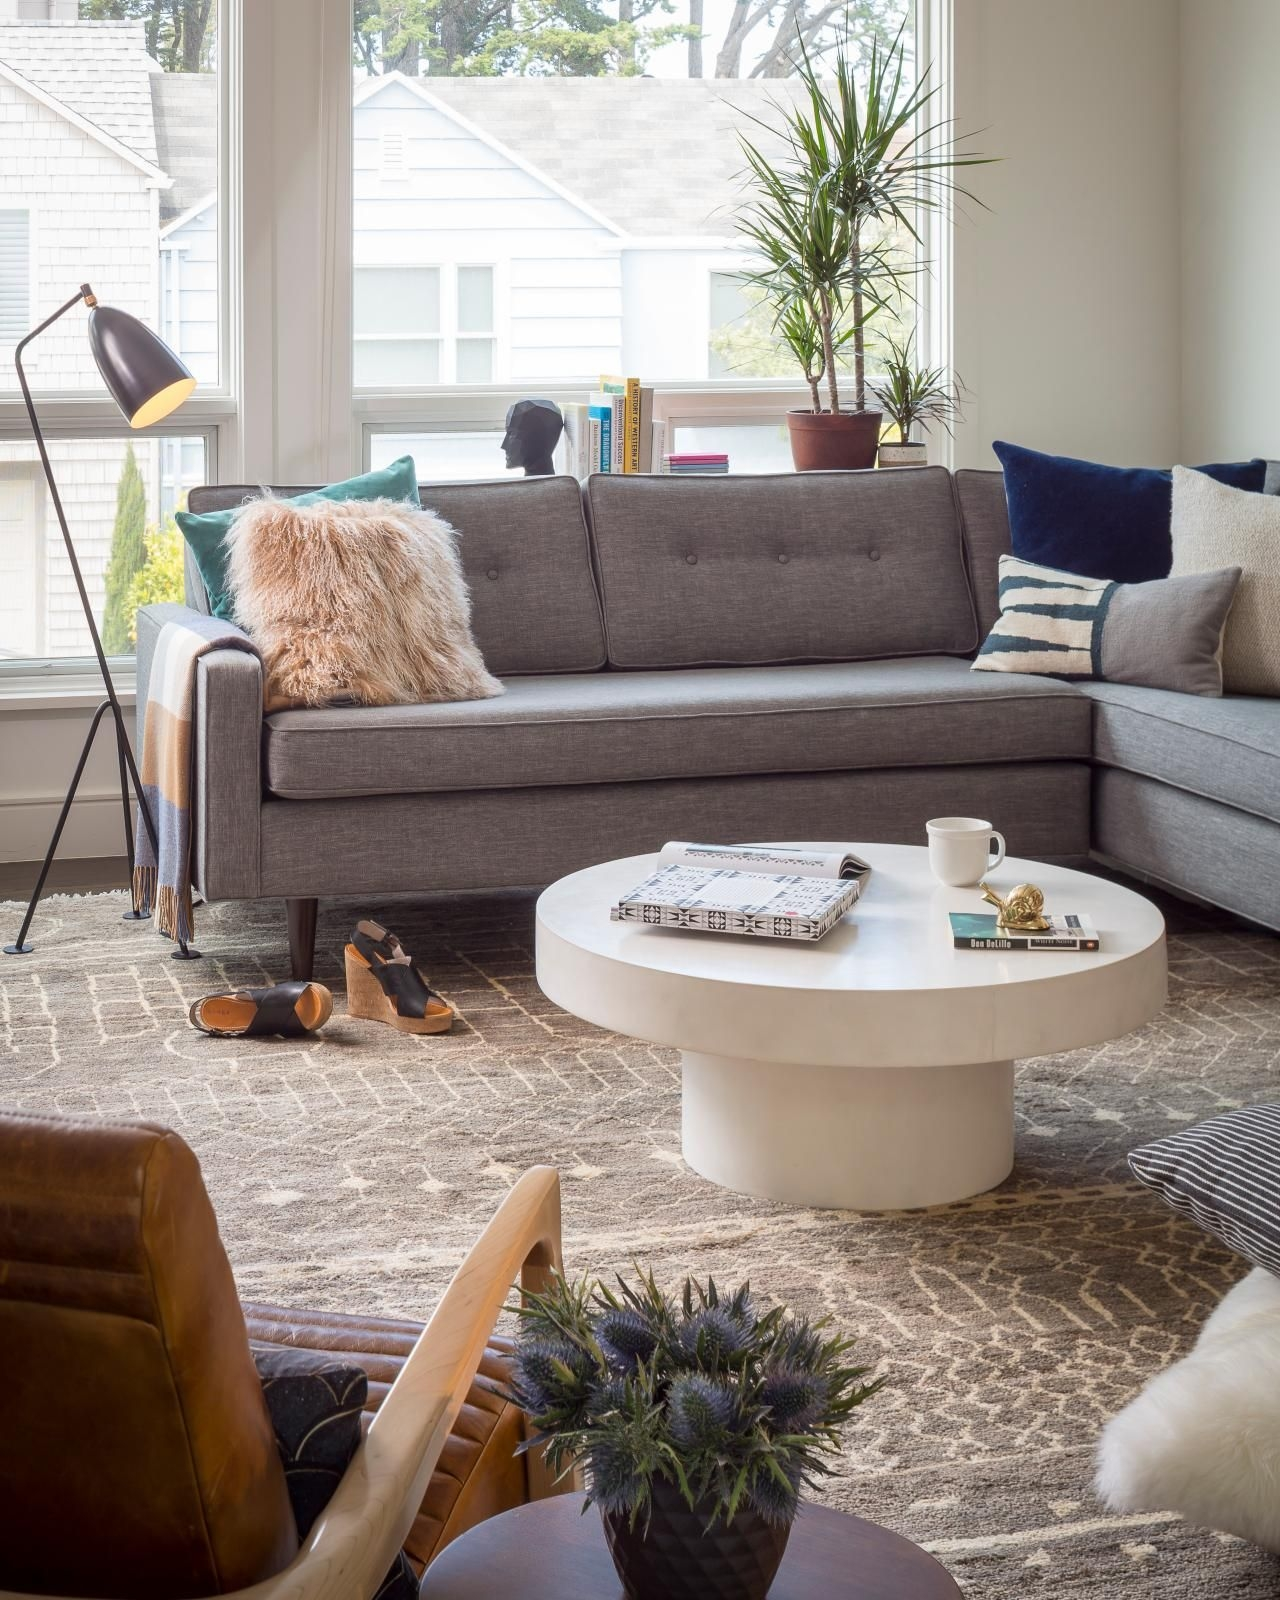 12 Living Room Ideas For A Grey Sectional  Hgtv'S Decorating  Design Blog  Hgtv